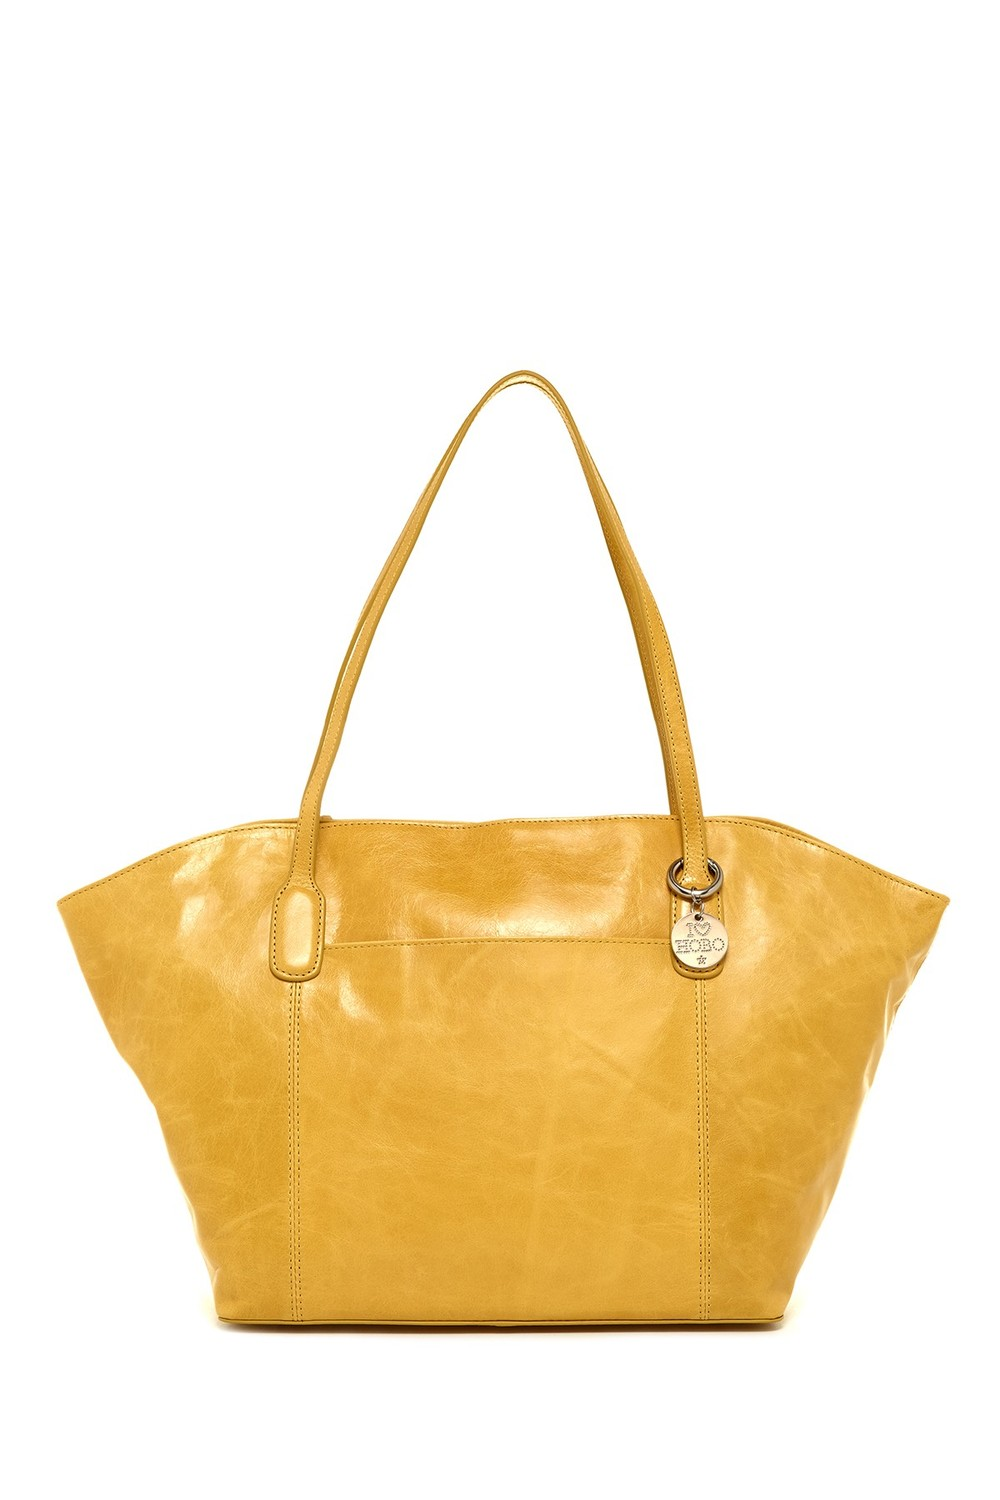 Hobo Patti Leather Tote. Nordstrom Rack. Was: $248 Now: $124.